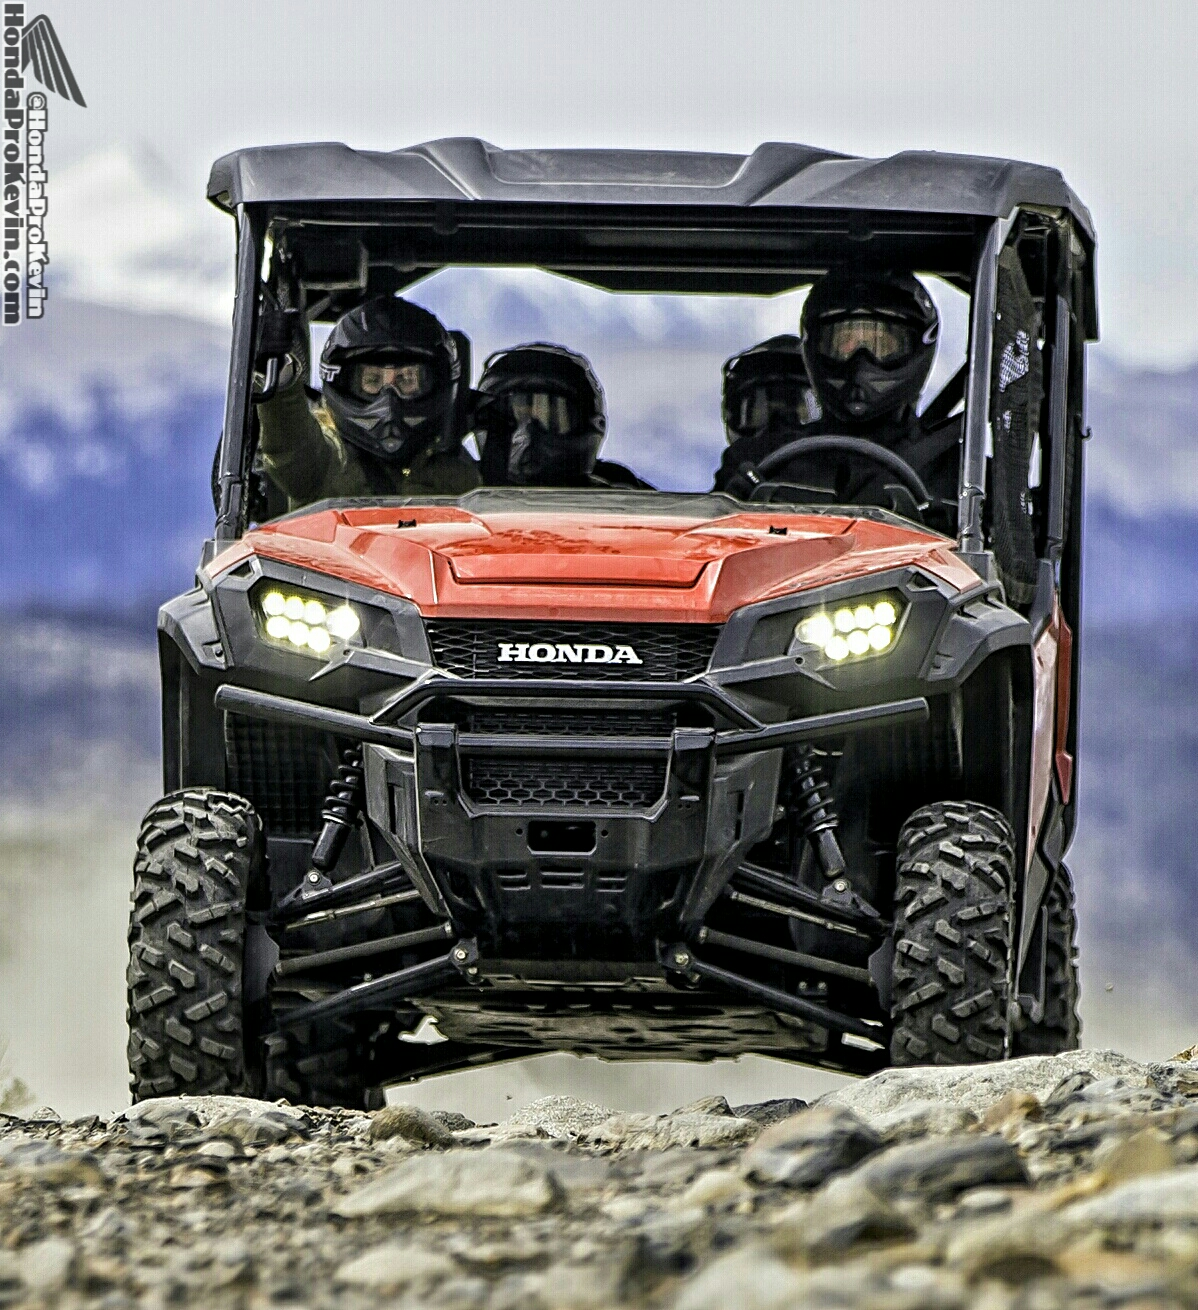 2016 Honda Pioneer 1000-5 5 Seater SxS / UTV / Side by Side ATV 1000 cc